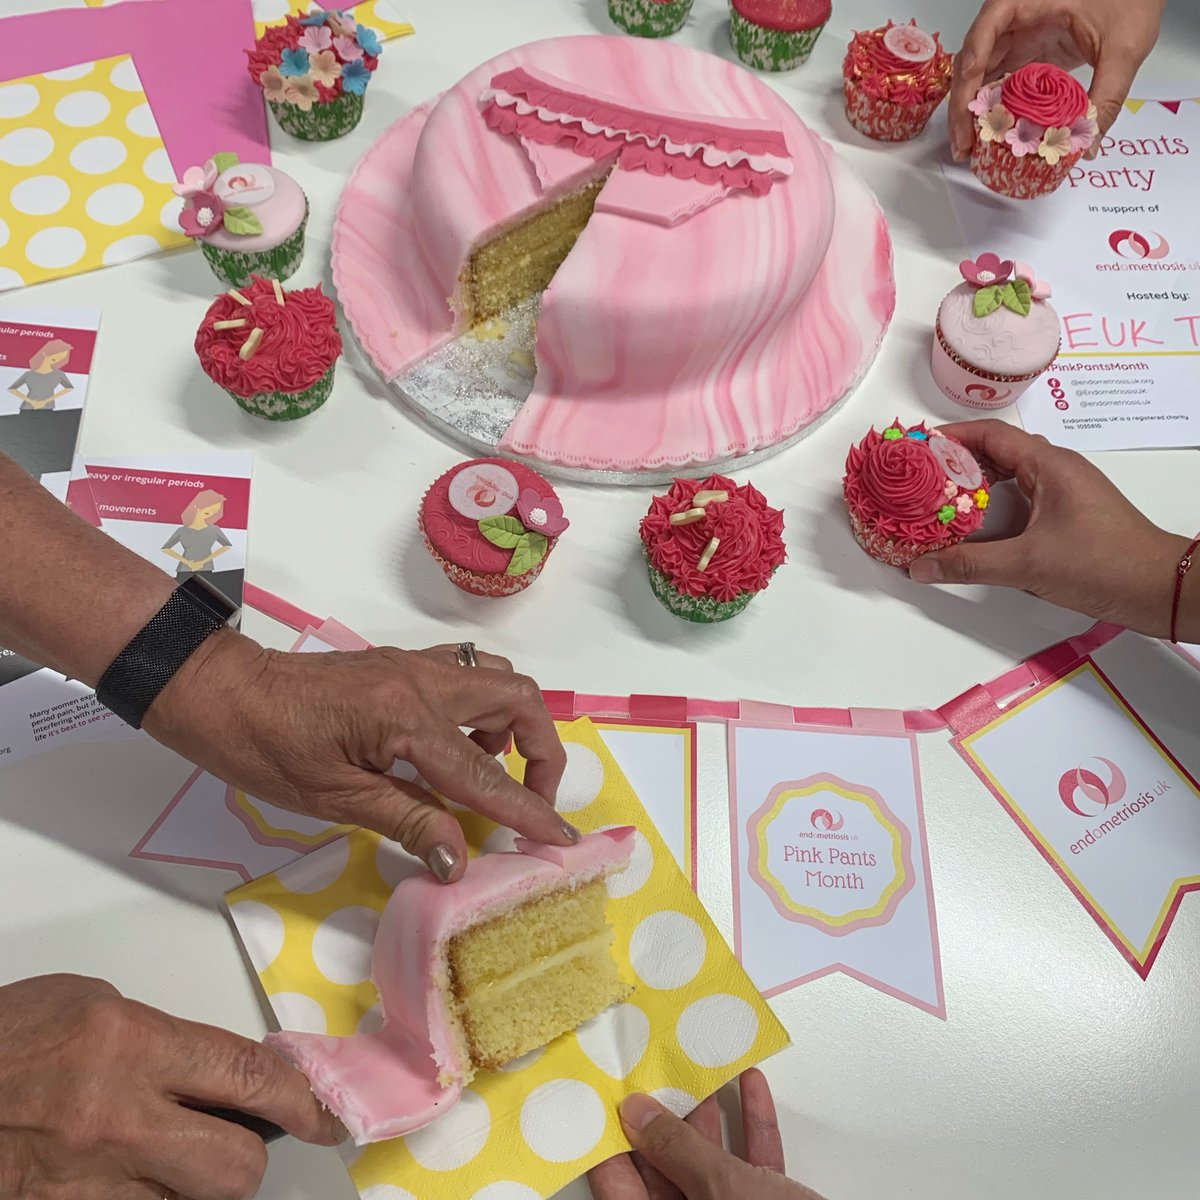 Sunday sees the launch of Pink Pants Month! 🧁 Happy party planning and baking to everyone hosting Pink Pants Parties in support of Endometriosis UK – please tag us in your photos & #PinkPantsMonth. To register for your free party pack: https://t.co/b5LOR0EeGv #endometriosis https://t.co/LAKcejcPbr